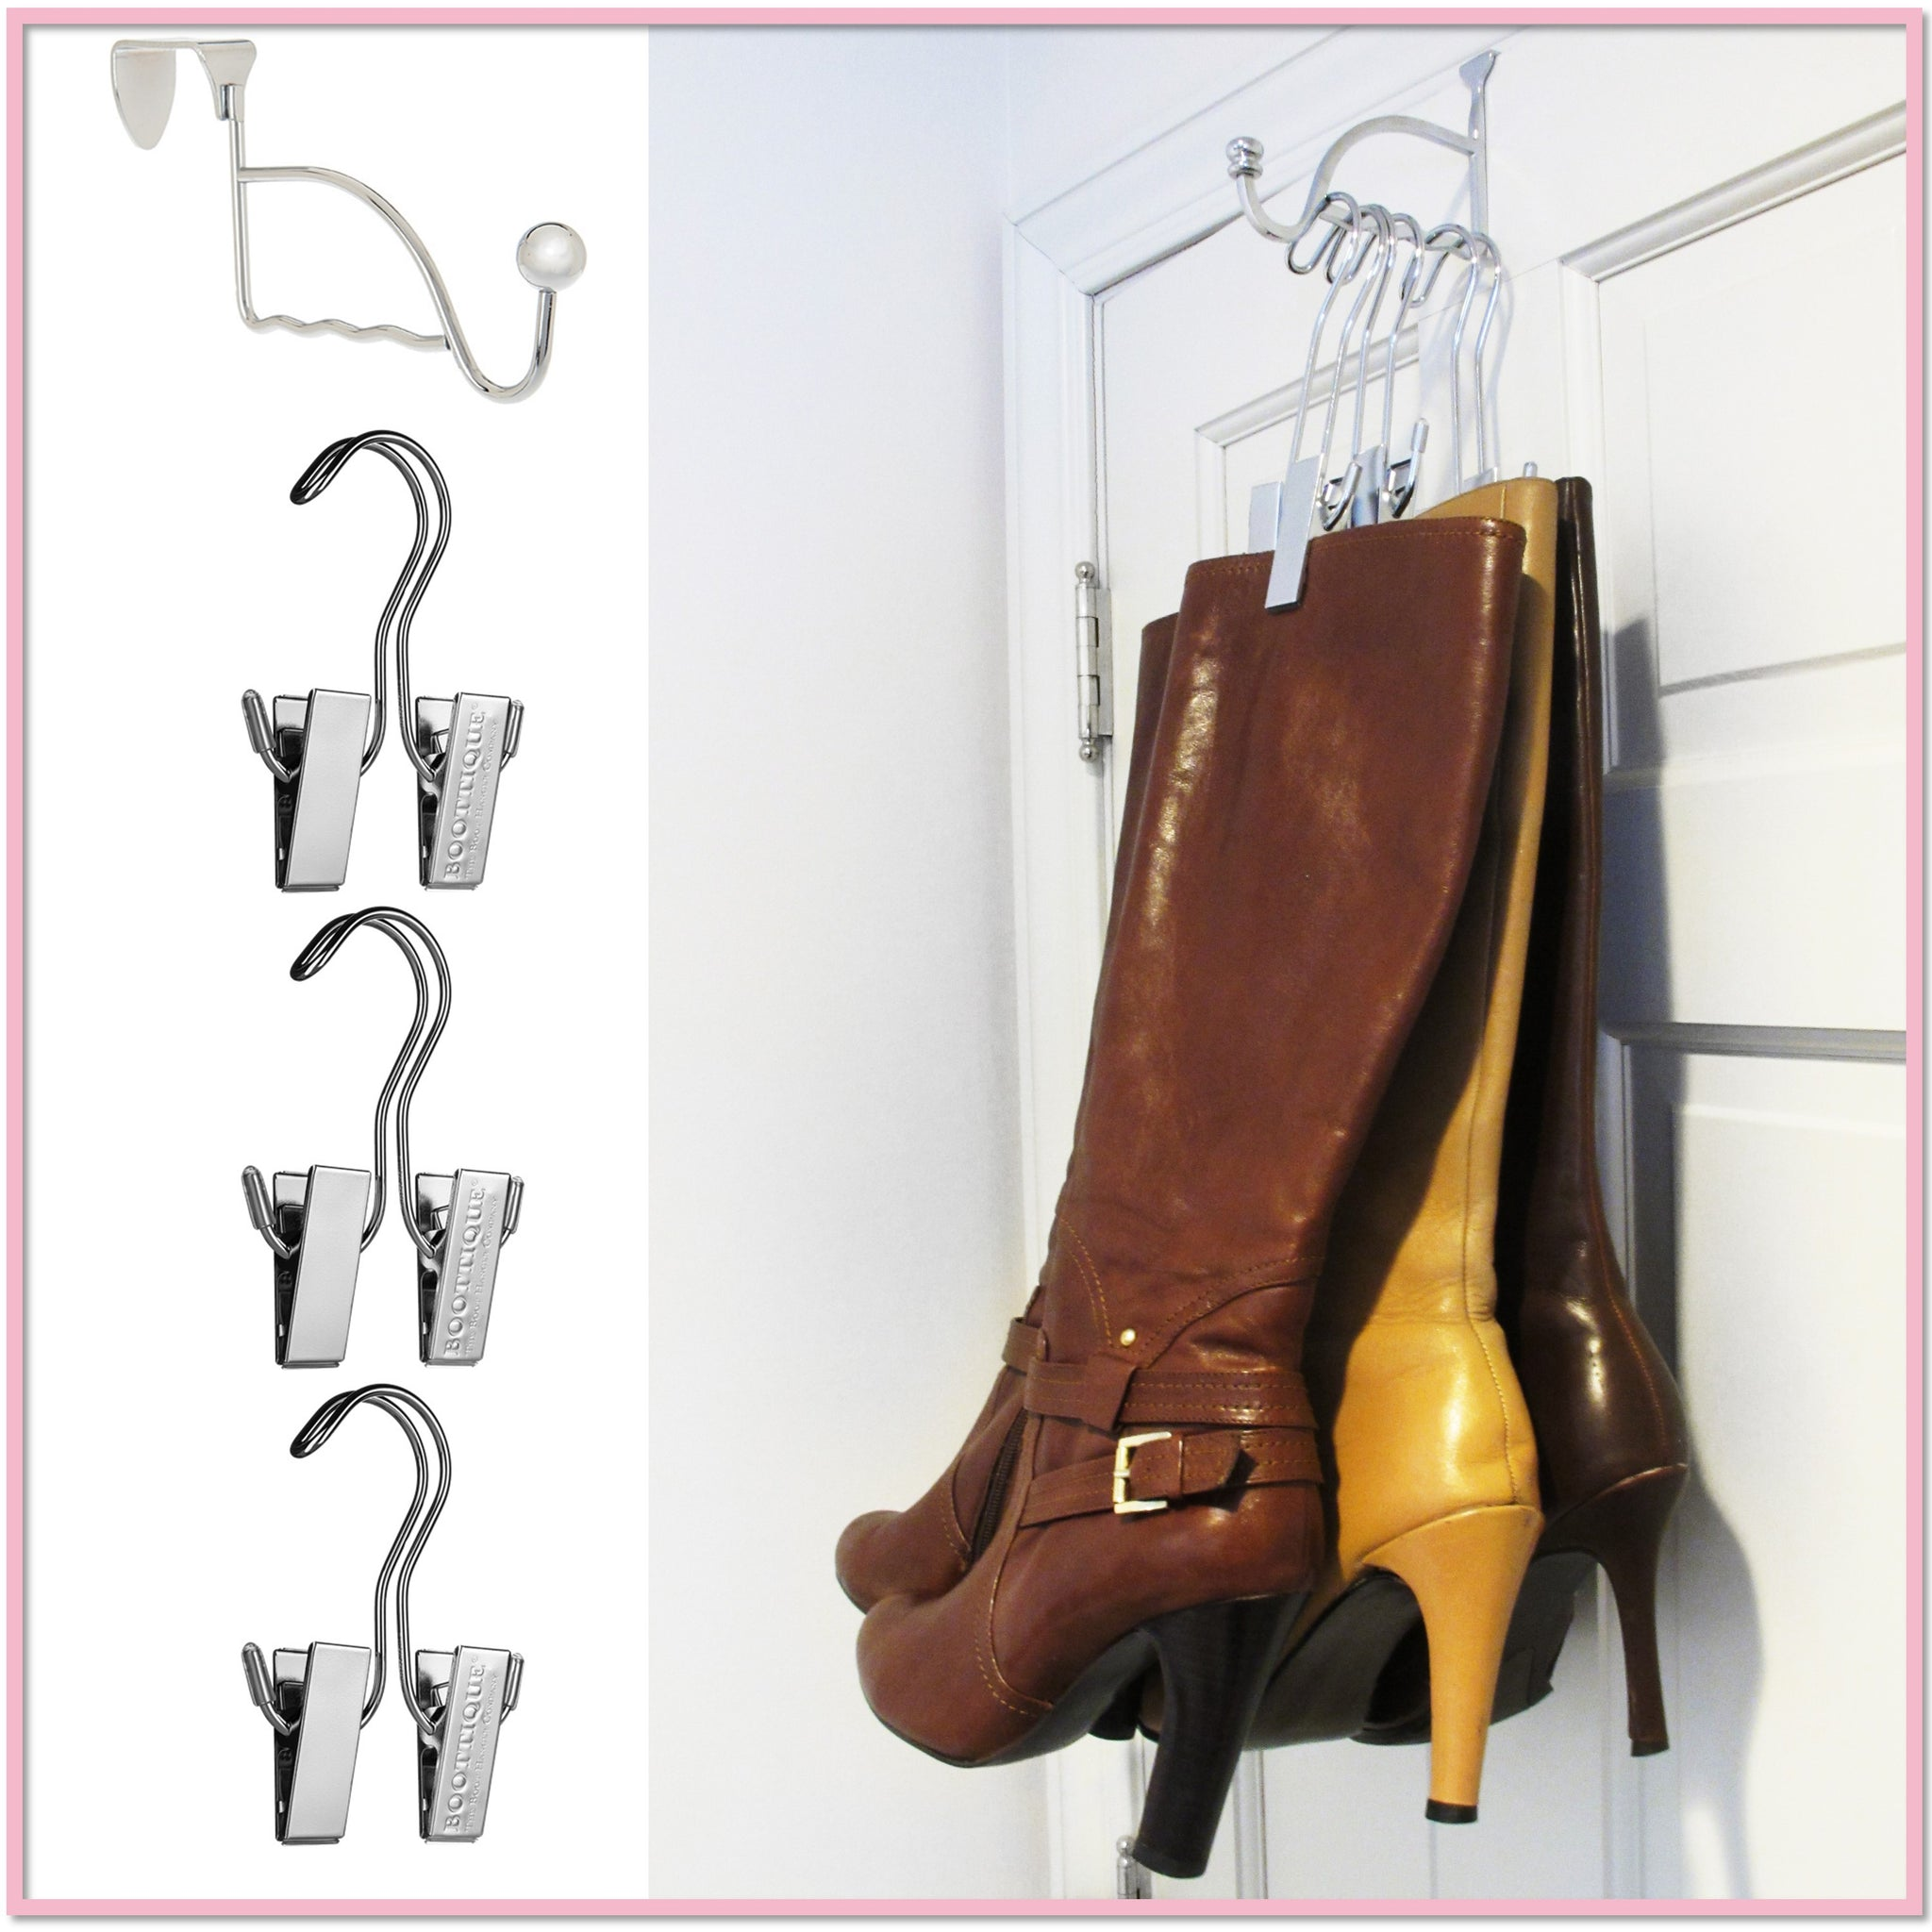 25b8a16a44 The Boot Valet™ (Includes 3 Boot Hangers) - Boottique